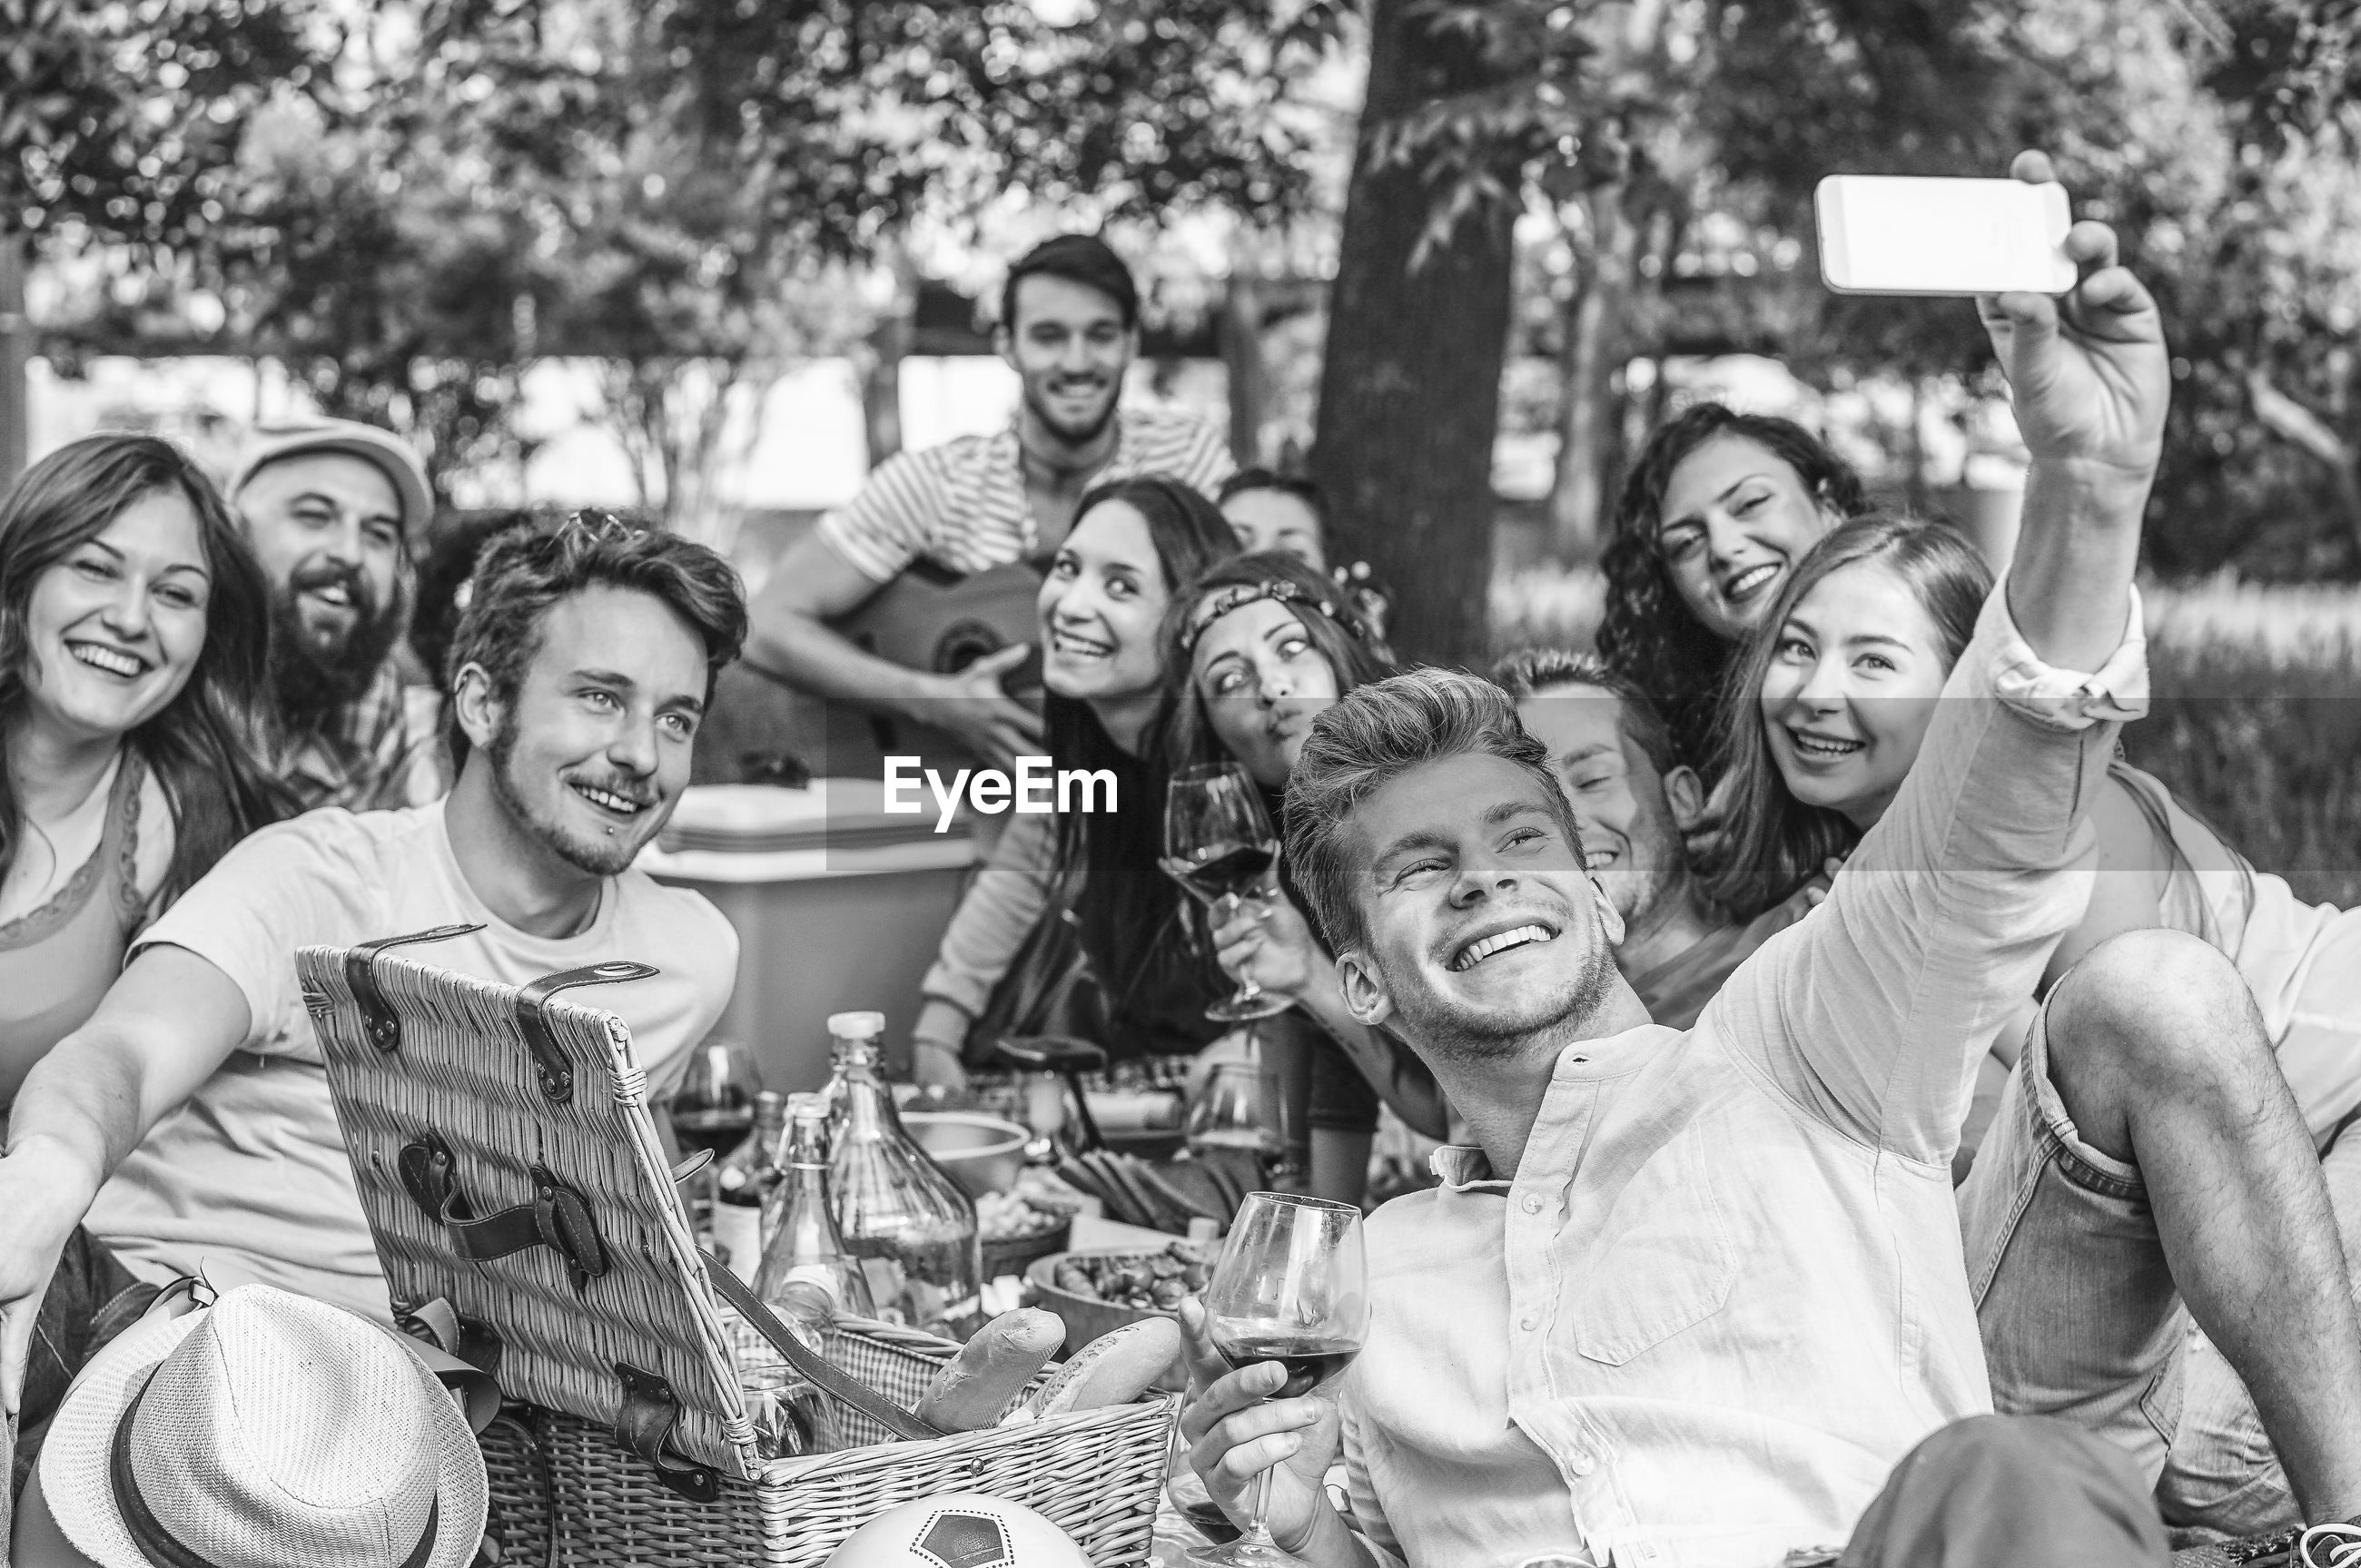 Man taking selfie on mobile phone with friends in picnic